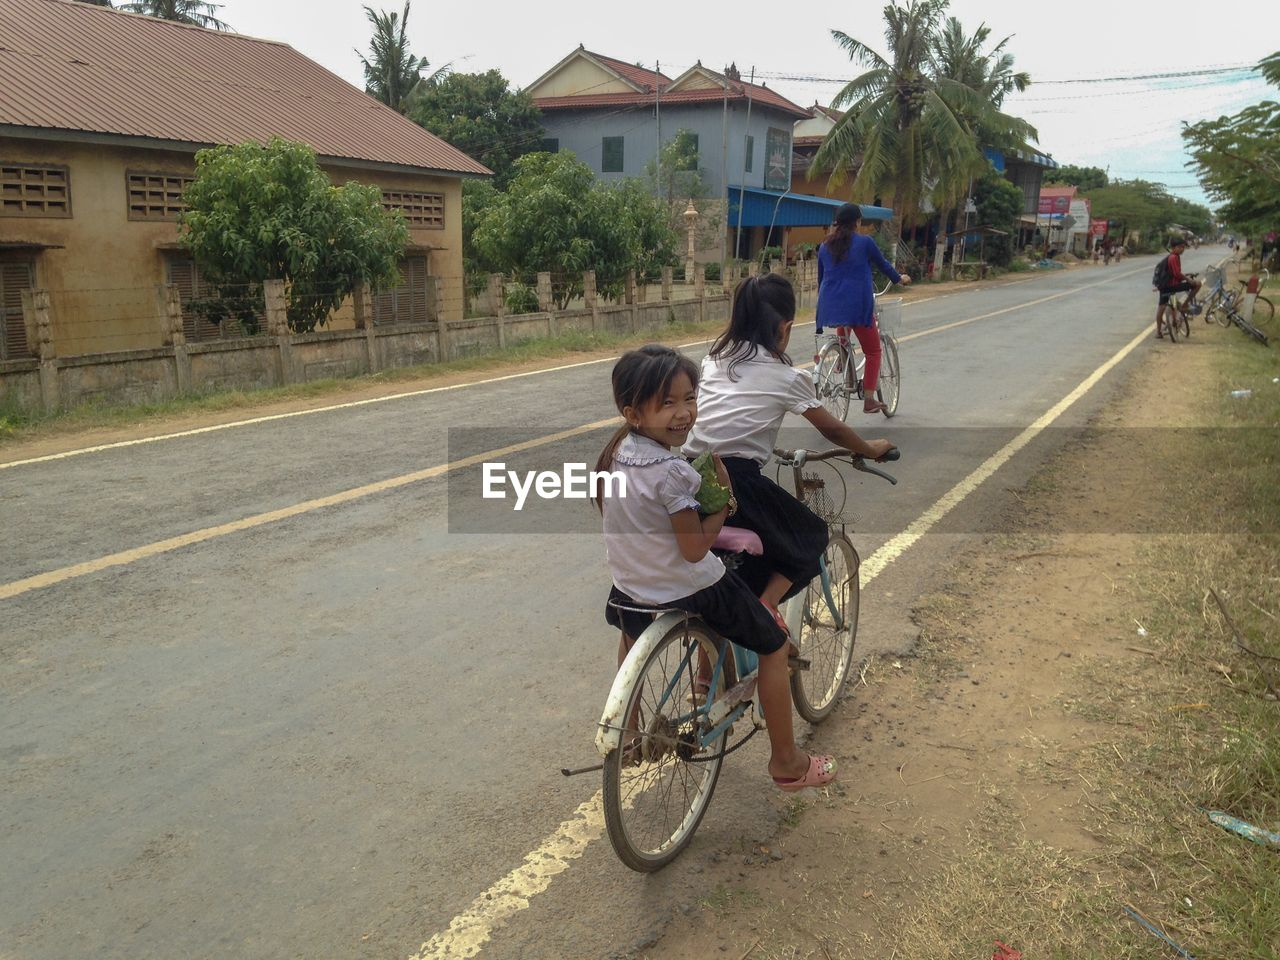 transportation, real people, child, men, childhood, bicycle, road, lifestyles, full length, group of people, males, boys, women, building exterior, people, land vehicle, females, riding, casual clothing, outdoors